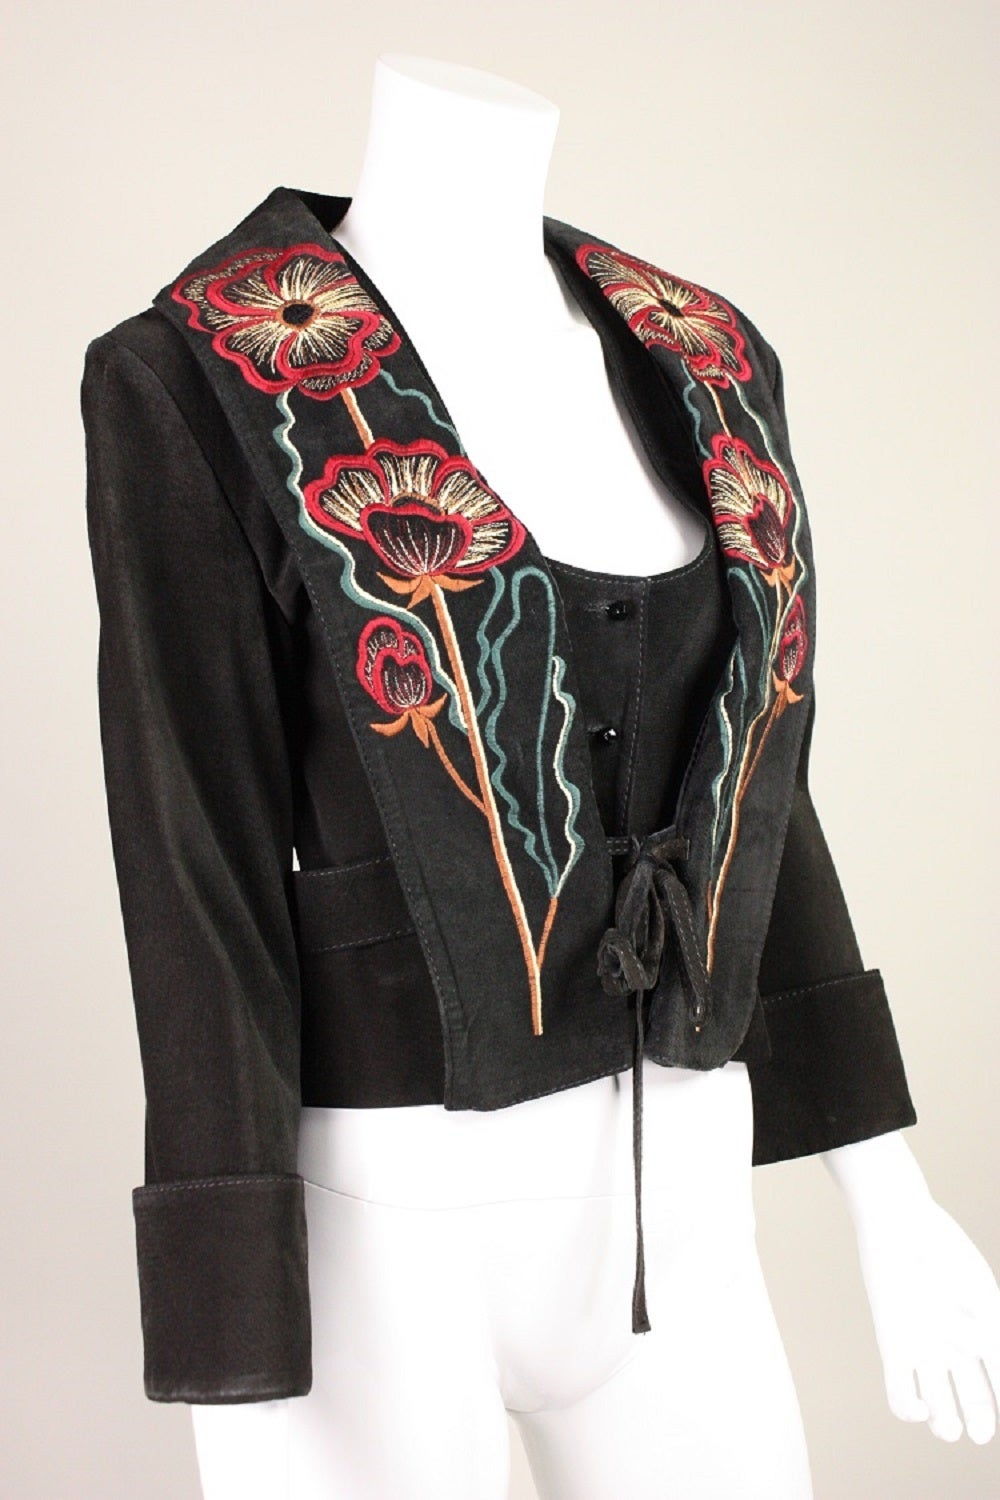 1970's Bill Gibb Suede Jacket & Vest with Embroidery 2